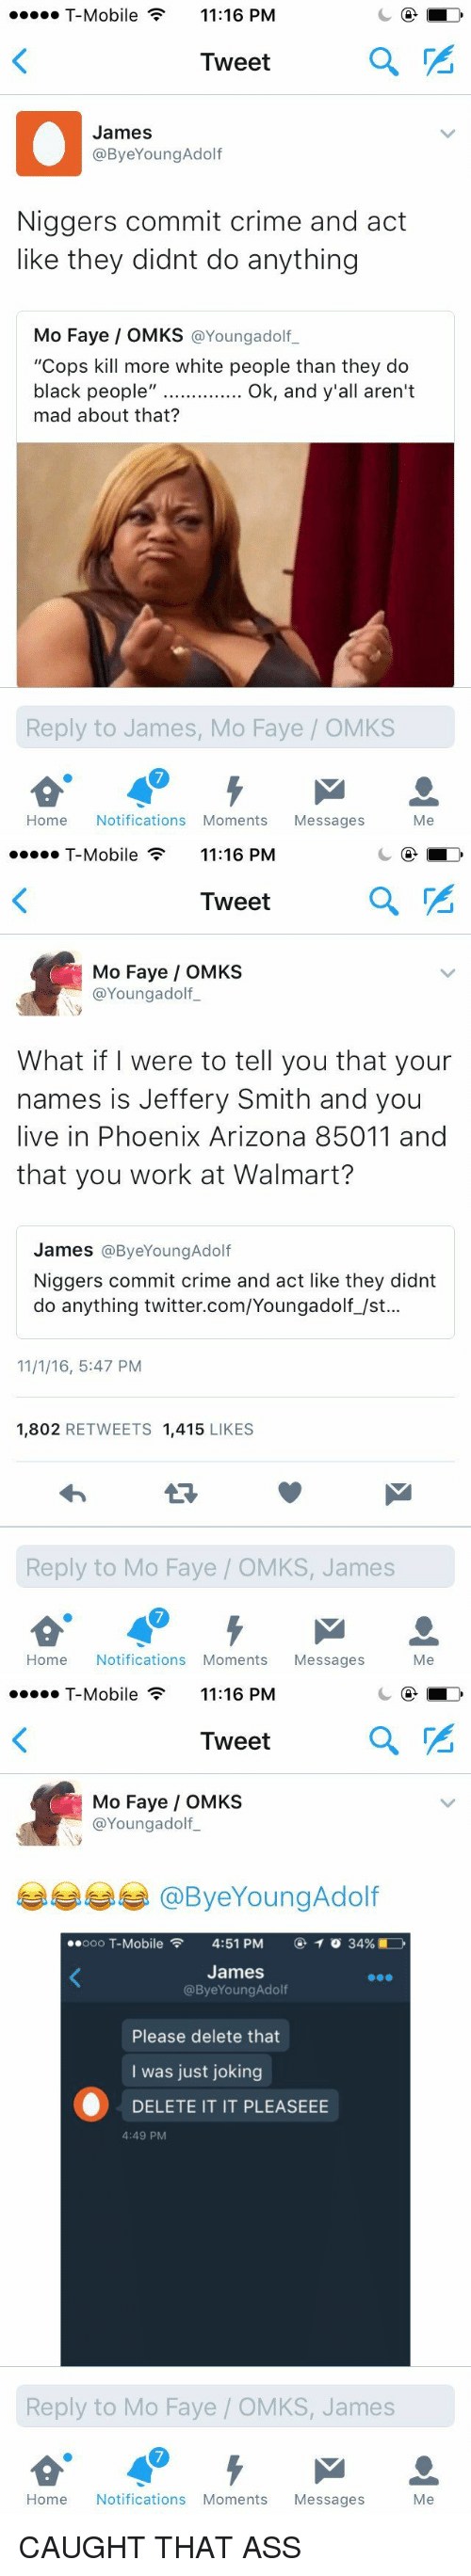 """Ass, Crime, and T-Mobile: T-Mobile 11:16 PM  Tweet  James  @Bye Young Adolf  Niggers commit crime and act  like they didnt do anything  Mo Faye OMKS  @Youngadolf  """"Cops kill more white people than they do  black people  II  Ok, and y'all aren't  mad about that?  Reply to James, Mo Faye OMKS  Home Notifications Moments Messages  Me   T-Mobile 11:16 PM  Tweet  Mo Faye OMKS  Youngadolf  What if I were to tell you that your  names is Jeffery Smith and you  live in Phoenix Arizona 85011 and  that you work at Walmart?  James  ByeYoungAdolf  Niggers commit crime and act like they didnt  do anything twitter.com/Youngadolf /st...  11/1/16, 5:47 PM  1,802  RETWEETS 1,415  LIKES  Reply to Mo Faye OMKS, James  Home Notifications Moments  Messages  Me   T-Mobile 11:16 PM  Tweet  Mo Faye OMKS  @Young adolf  ooo T-Mobile  4:51 PM  T o 34%  James  @Bye Young Adolf  Please delete that  I was just joking  O DELETE IT IT PLEASEEE  4:49 PM  Reply to Mo Faye OMKS, James  Home Notifications Moments  Messages  Me CAUGHT THAT ASS"""